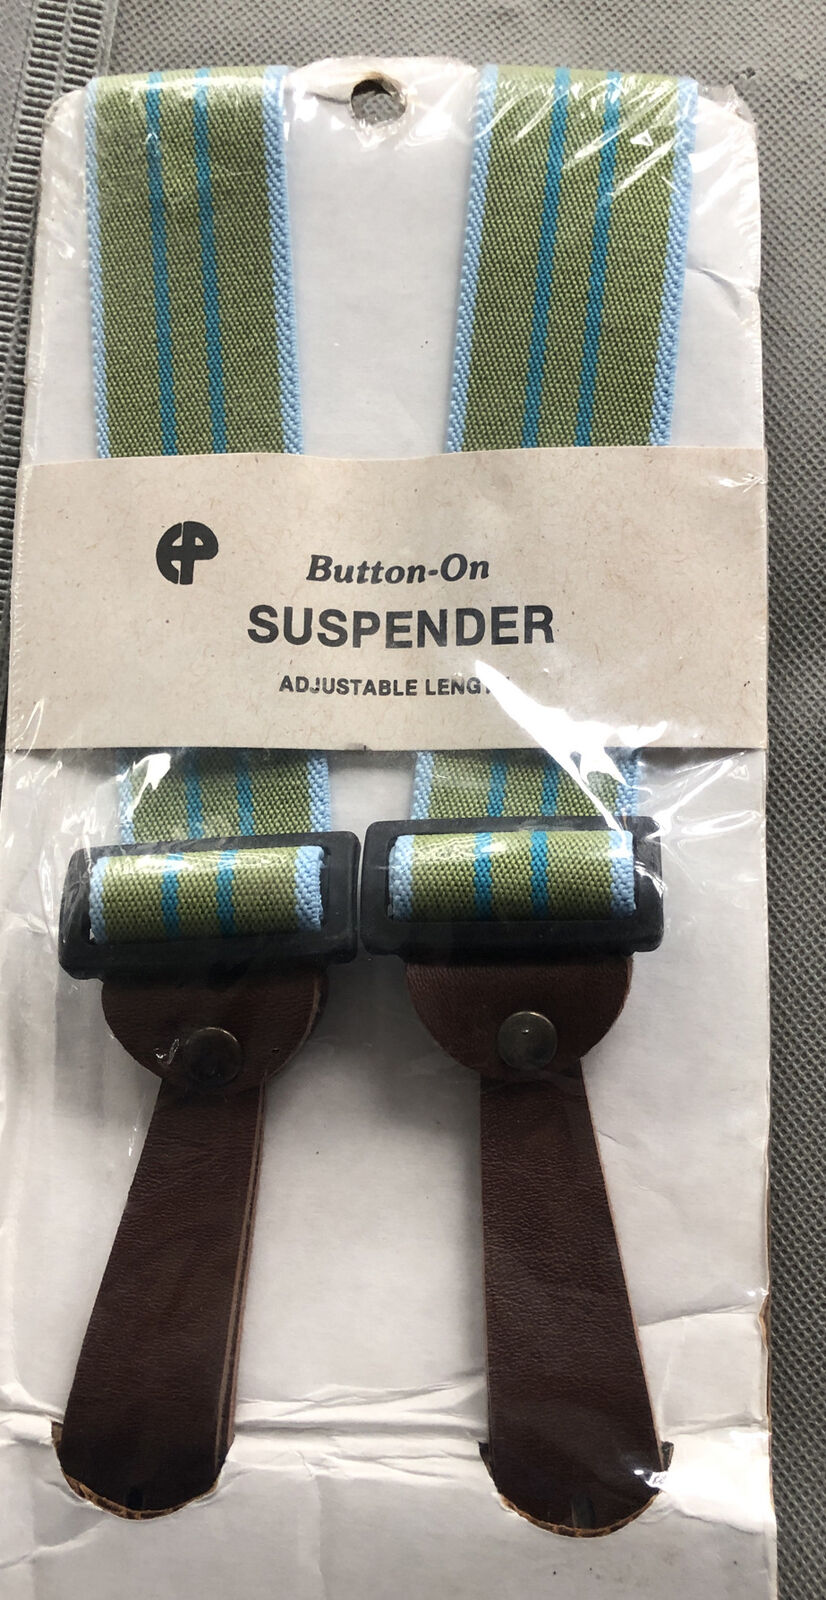 VTG Green And Blue Striped Leather Button-On Suspenders NEW IN PACKAGE Chil